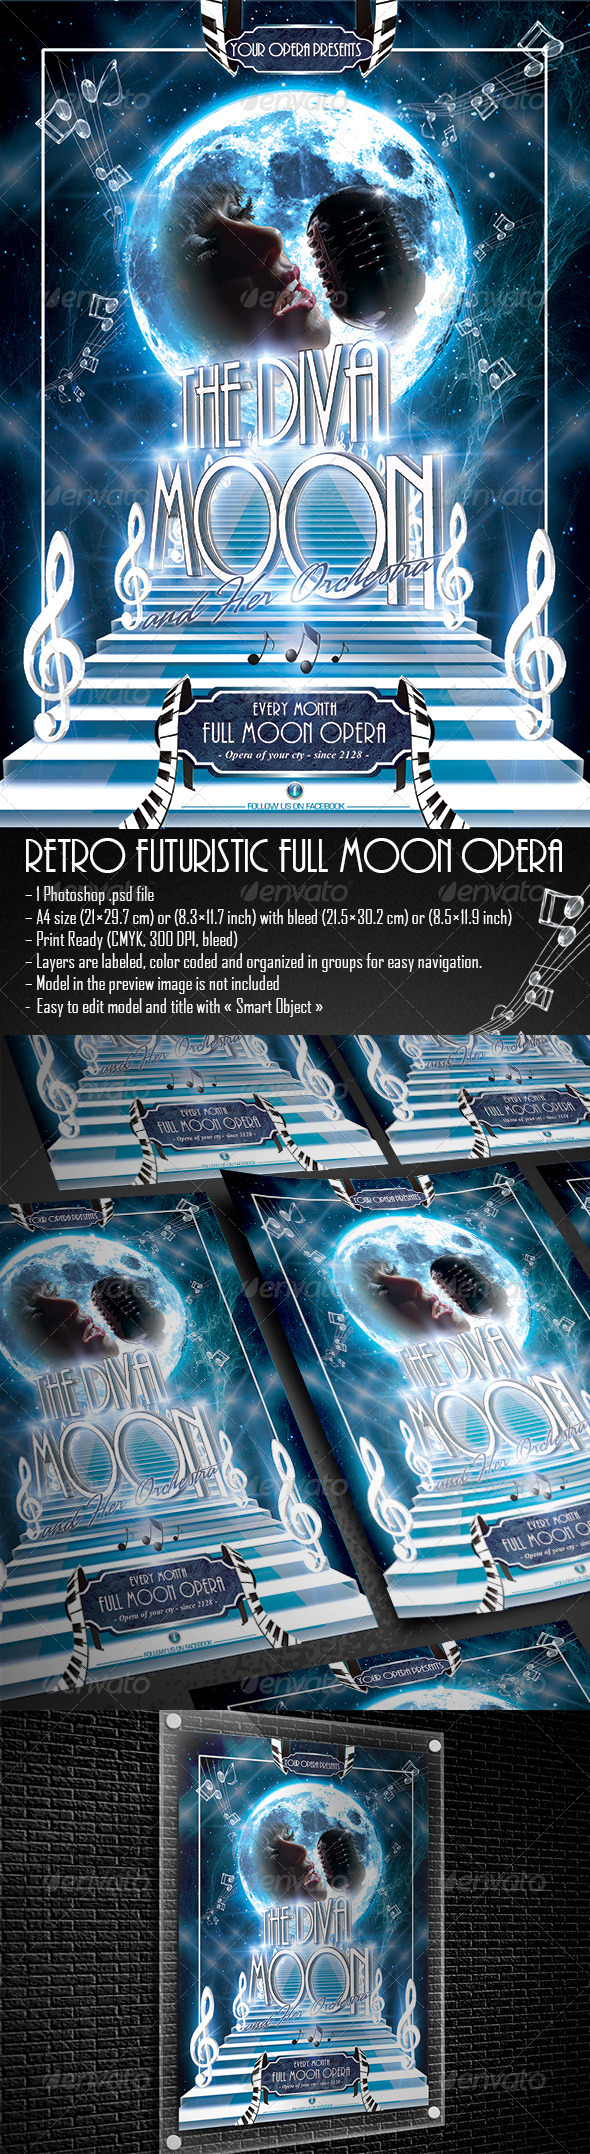 GraphicRiver Retro Futuristic Moon Opera Flyer 5233118